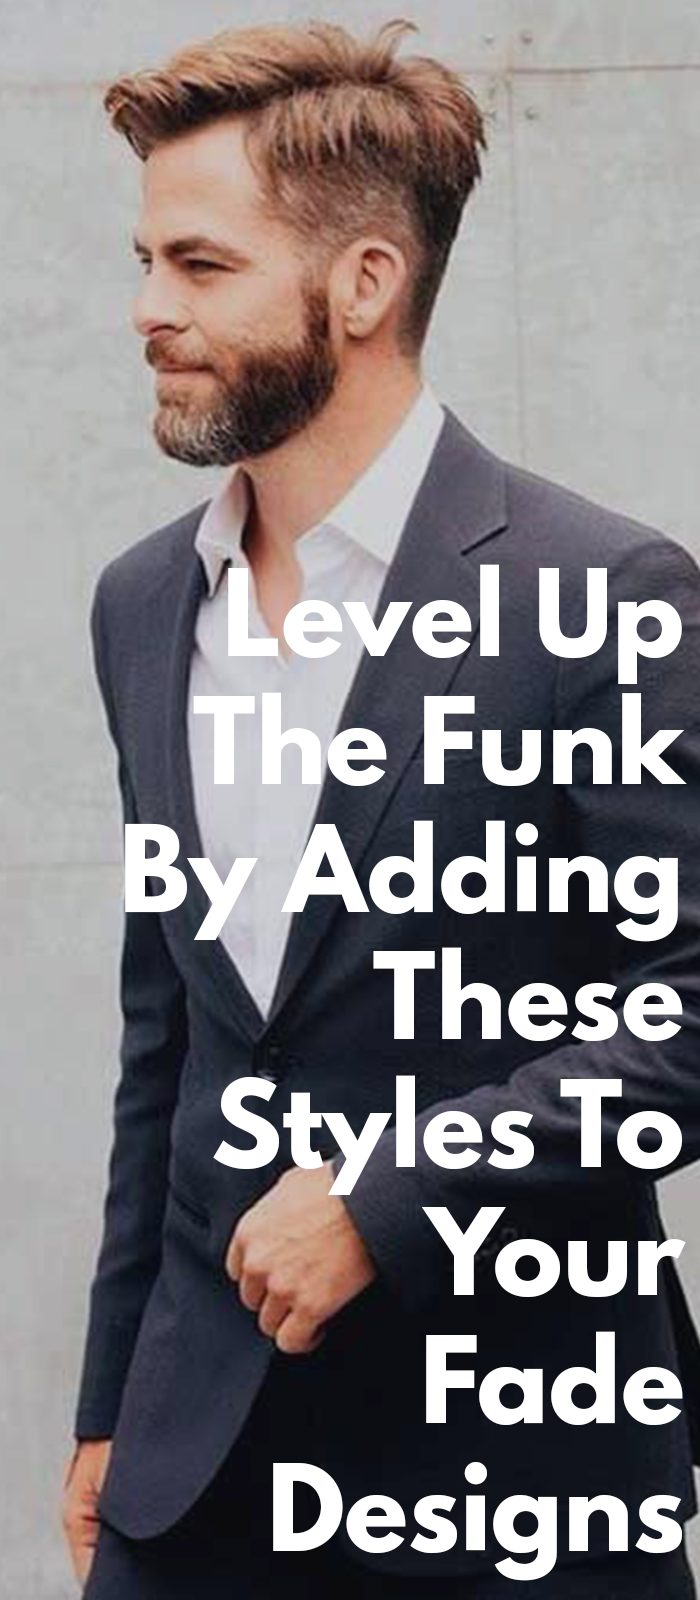 Level Up The Funk With Fade Designs